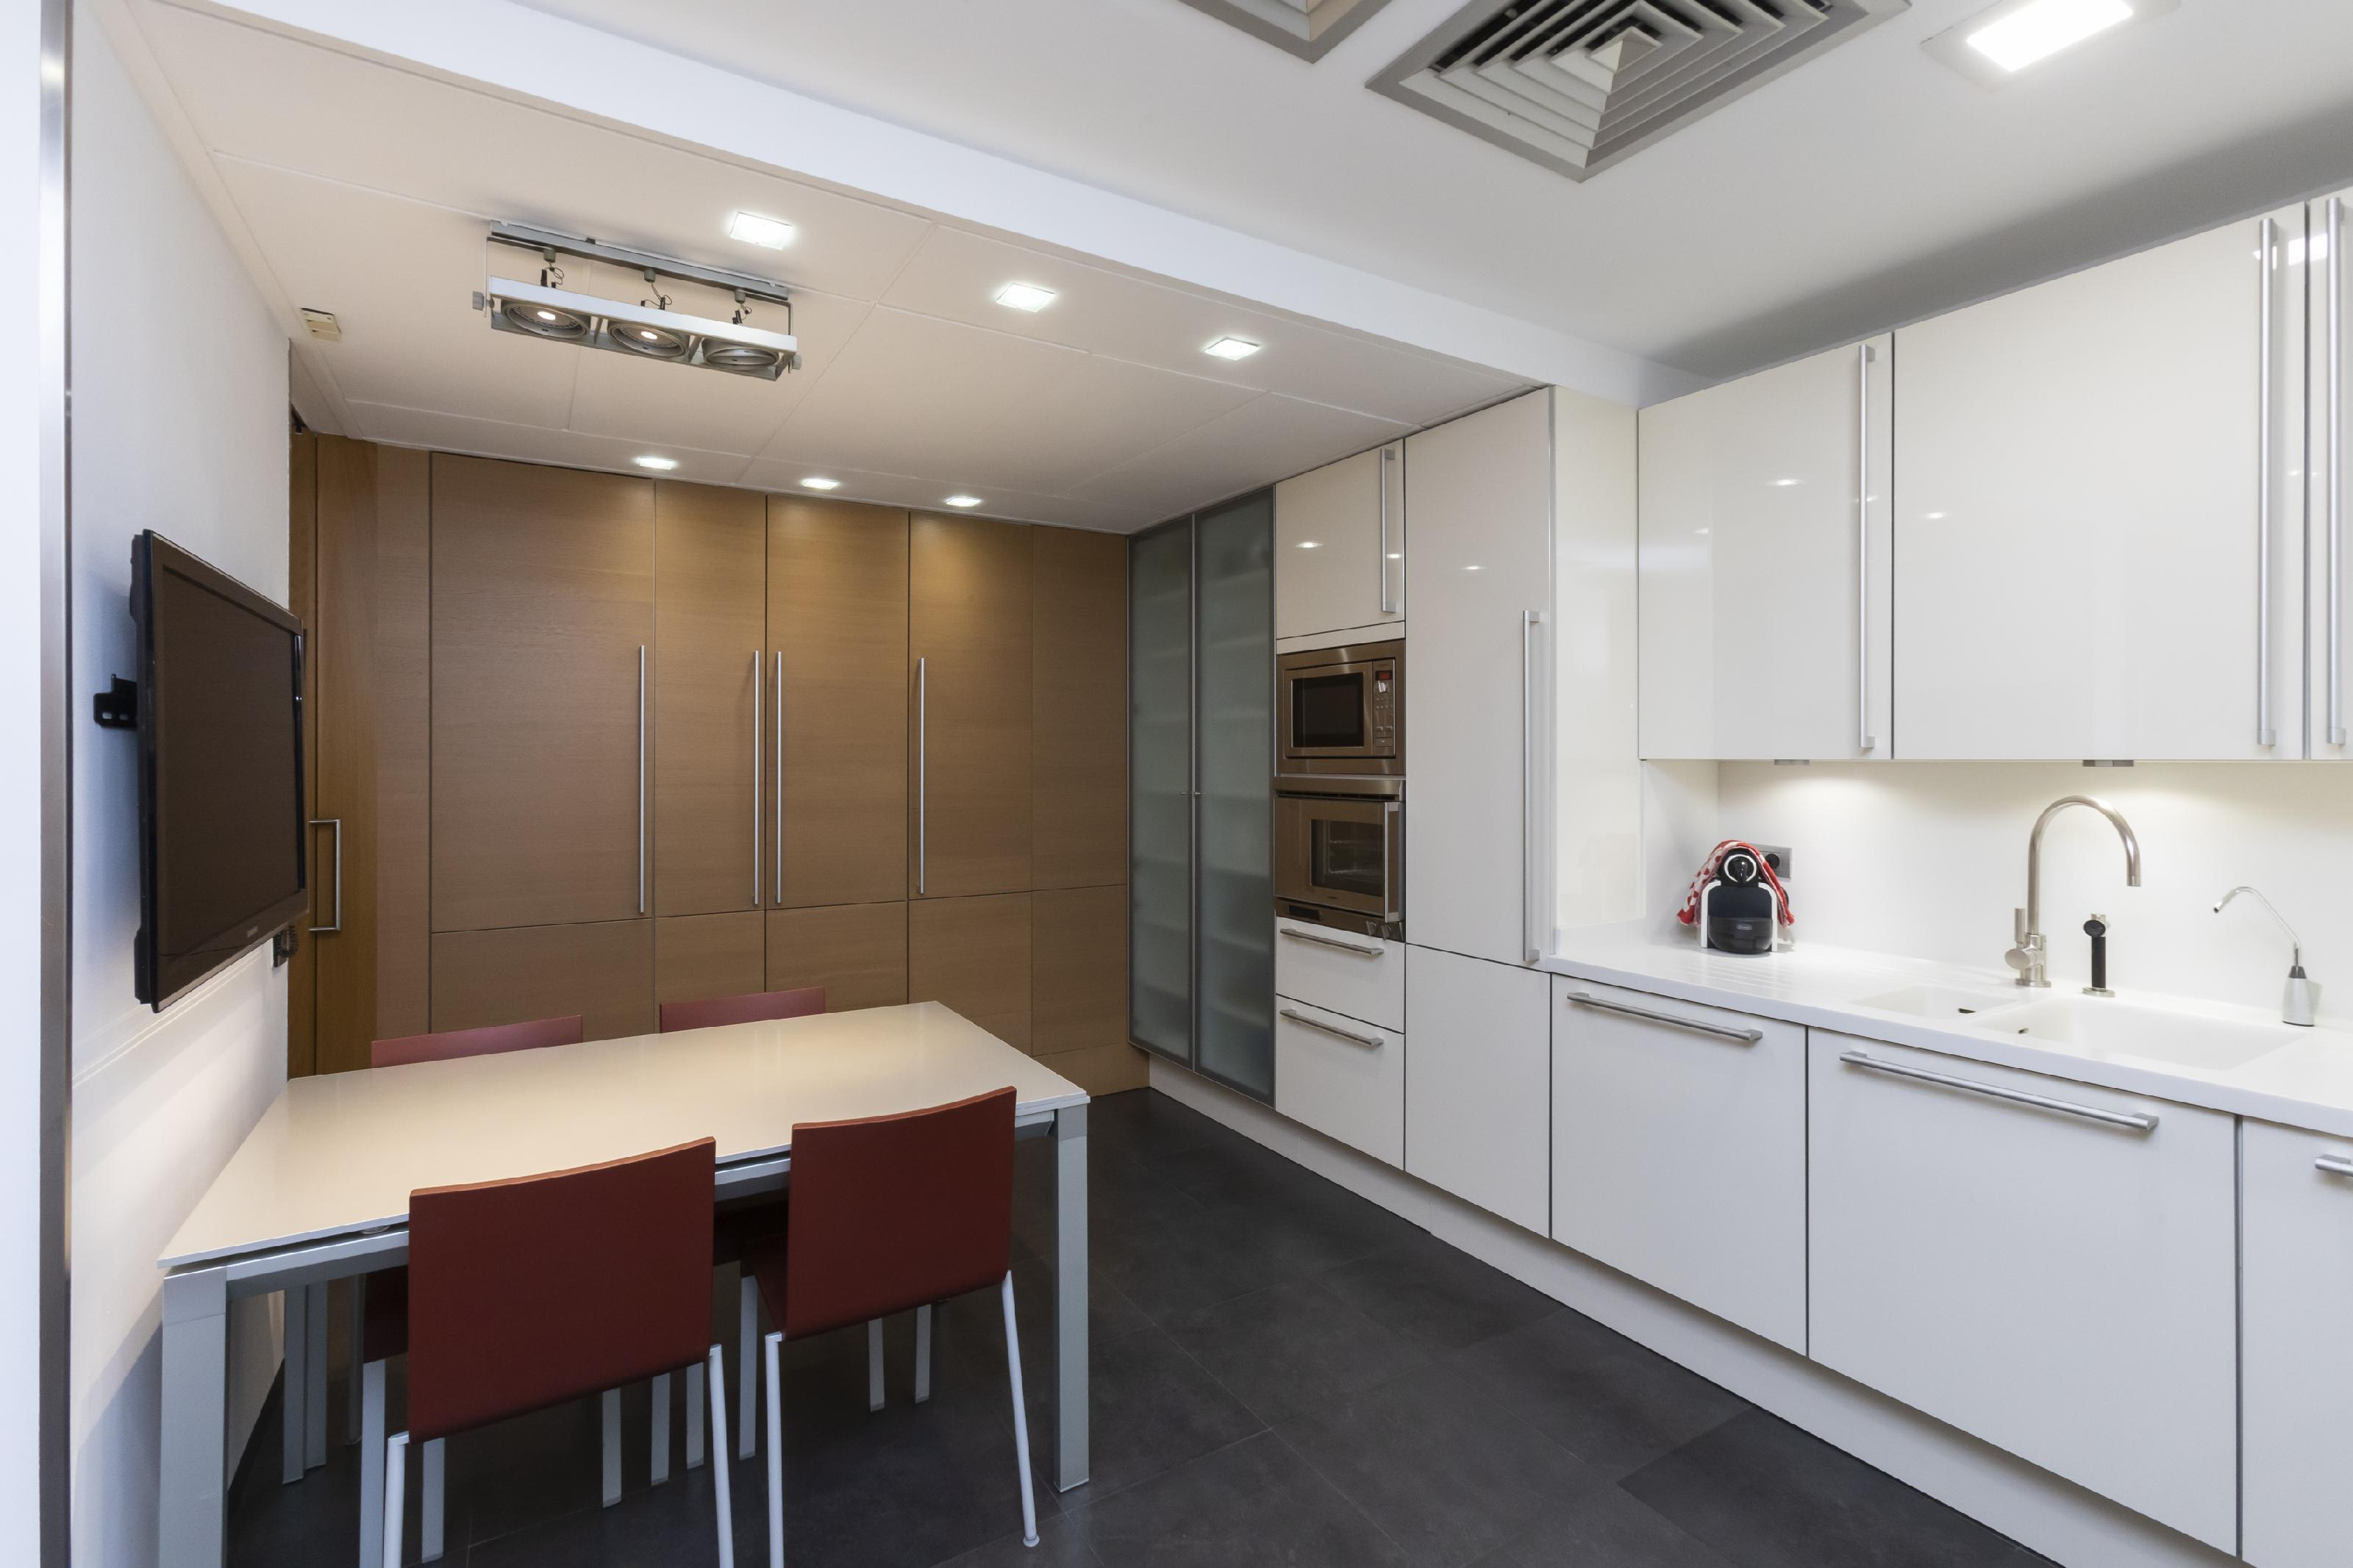 247020 Flat for sale in Les Corts, Les Corts 14